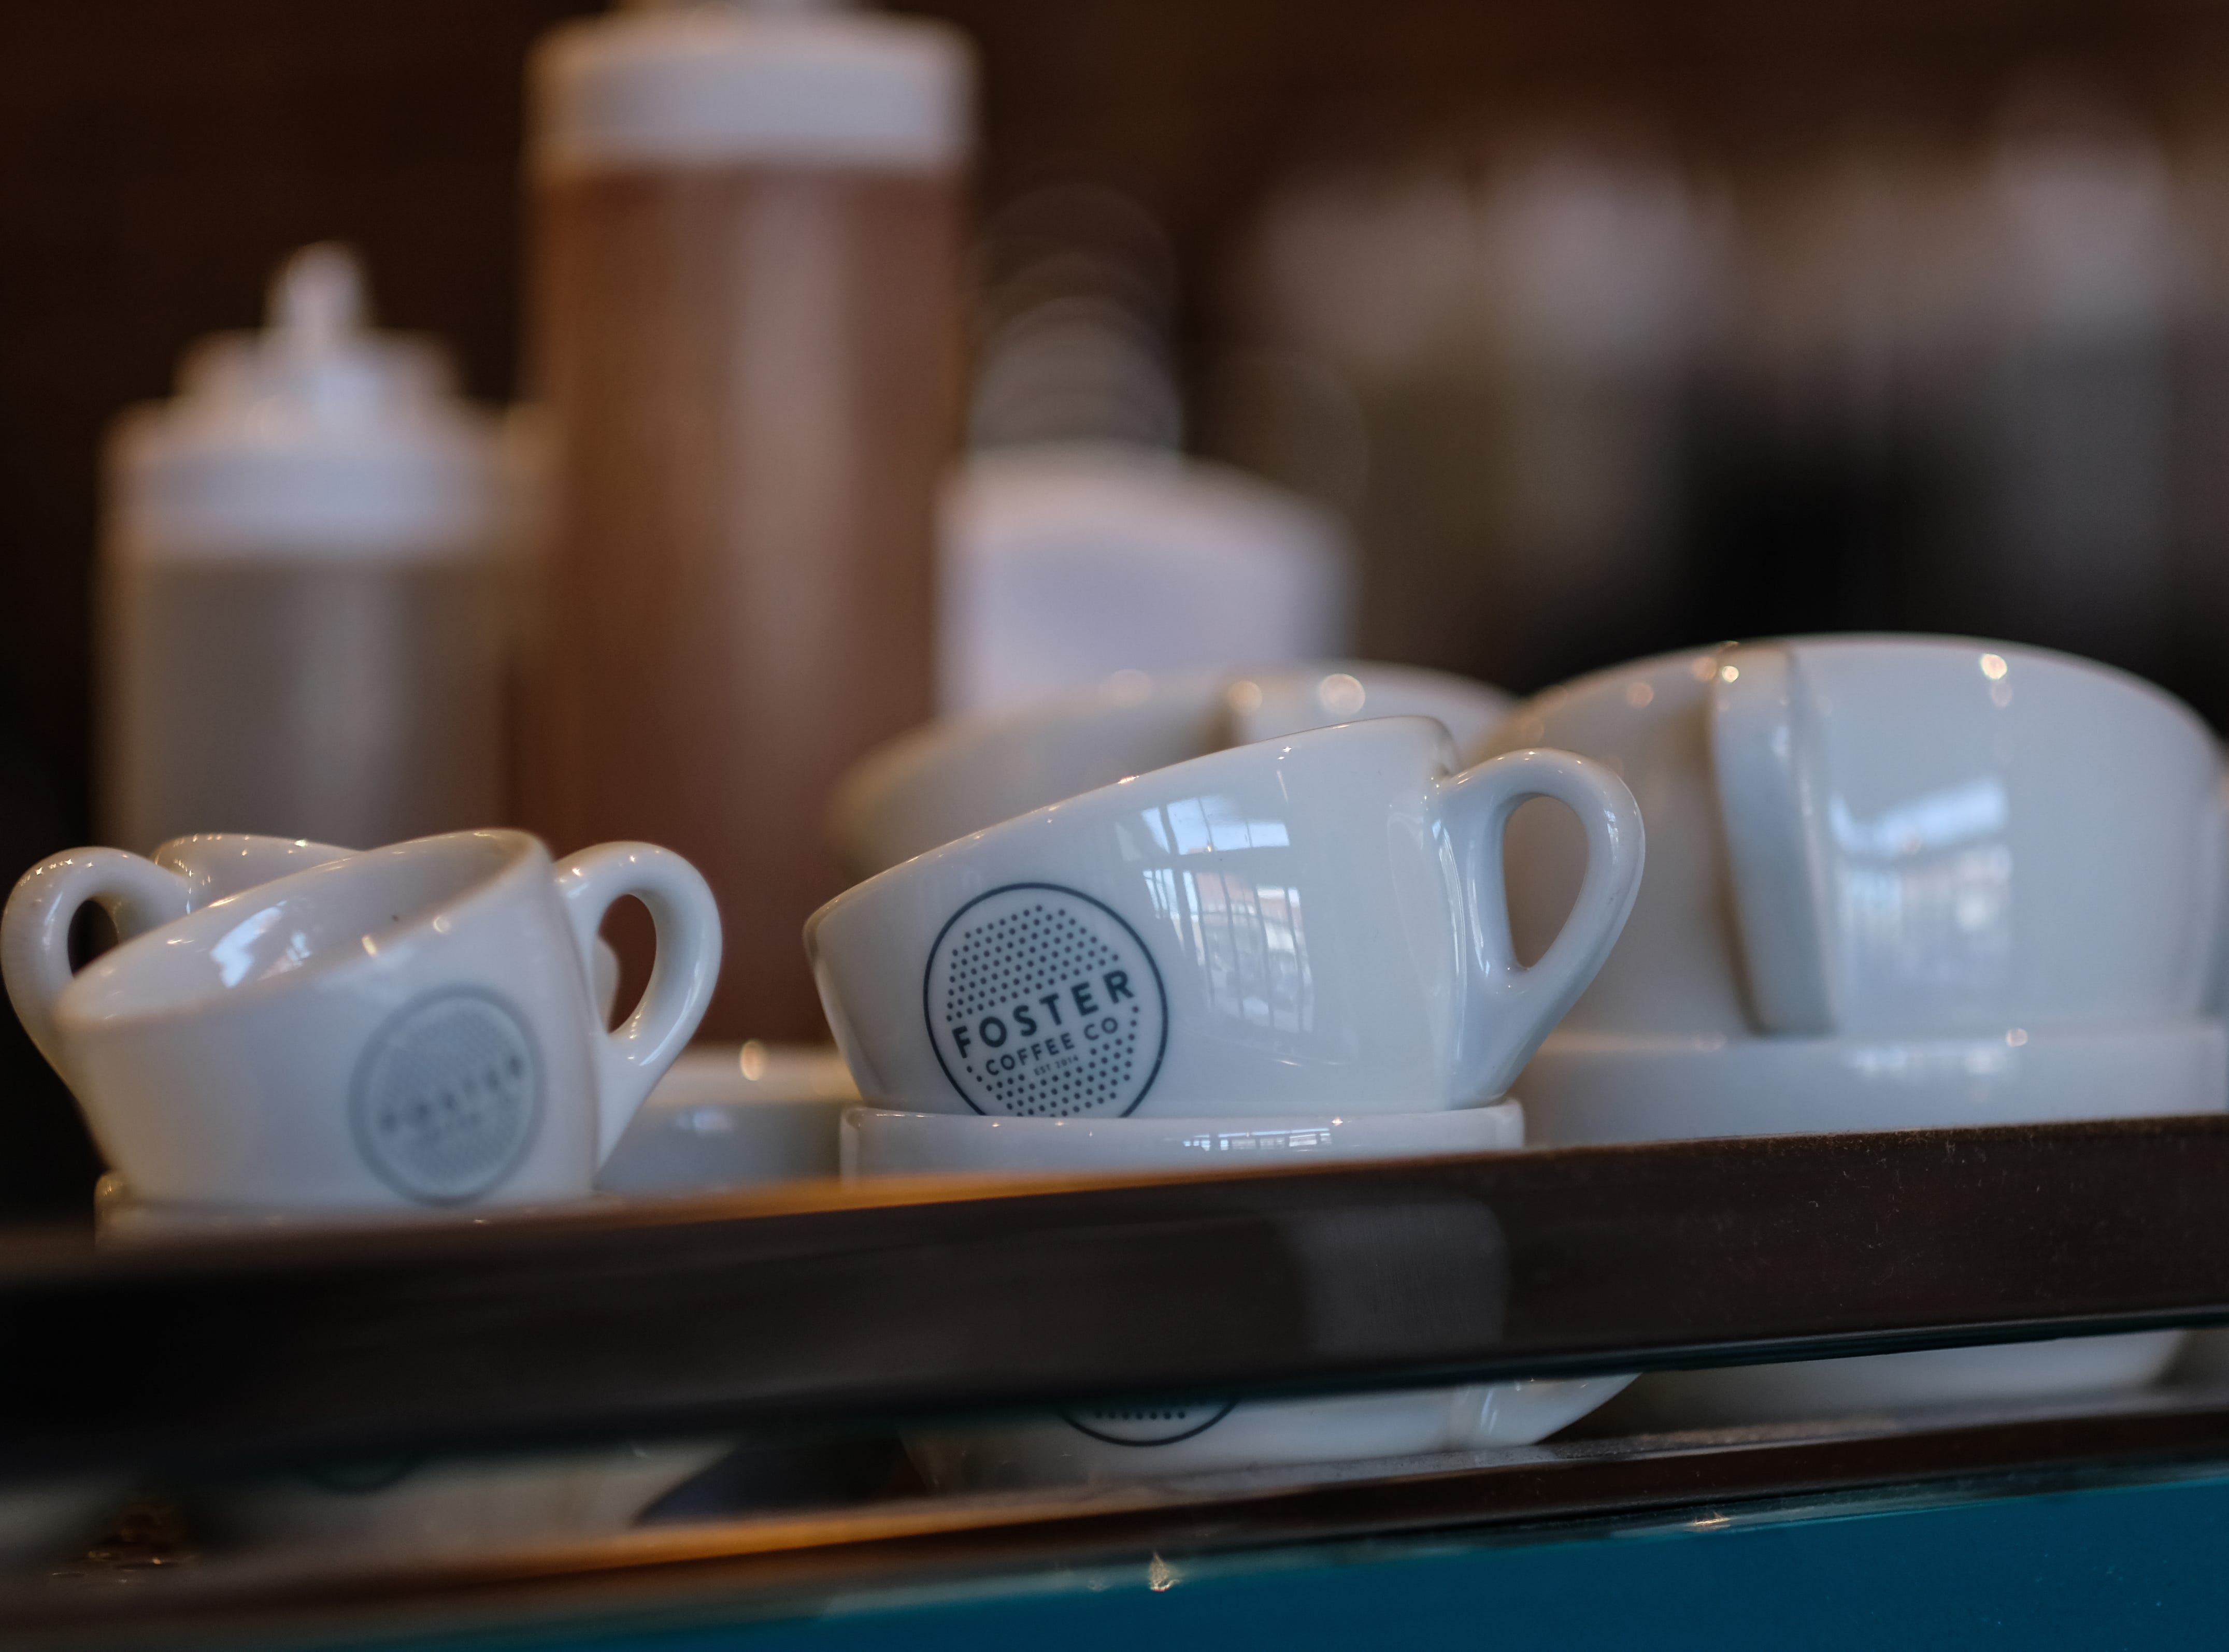 Cups of various sizes are ready for use at Foster Coffee Company in Owosso.